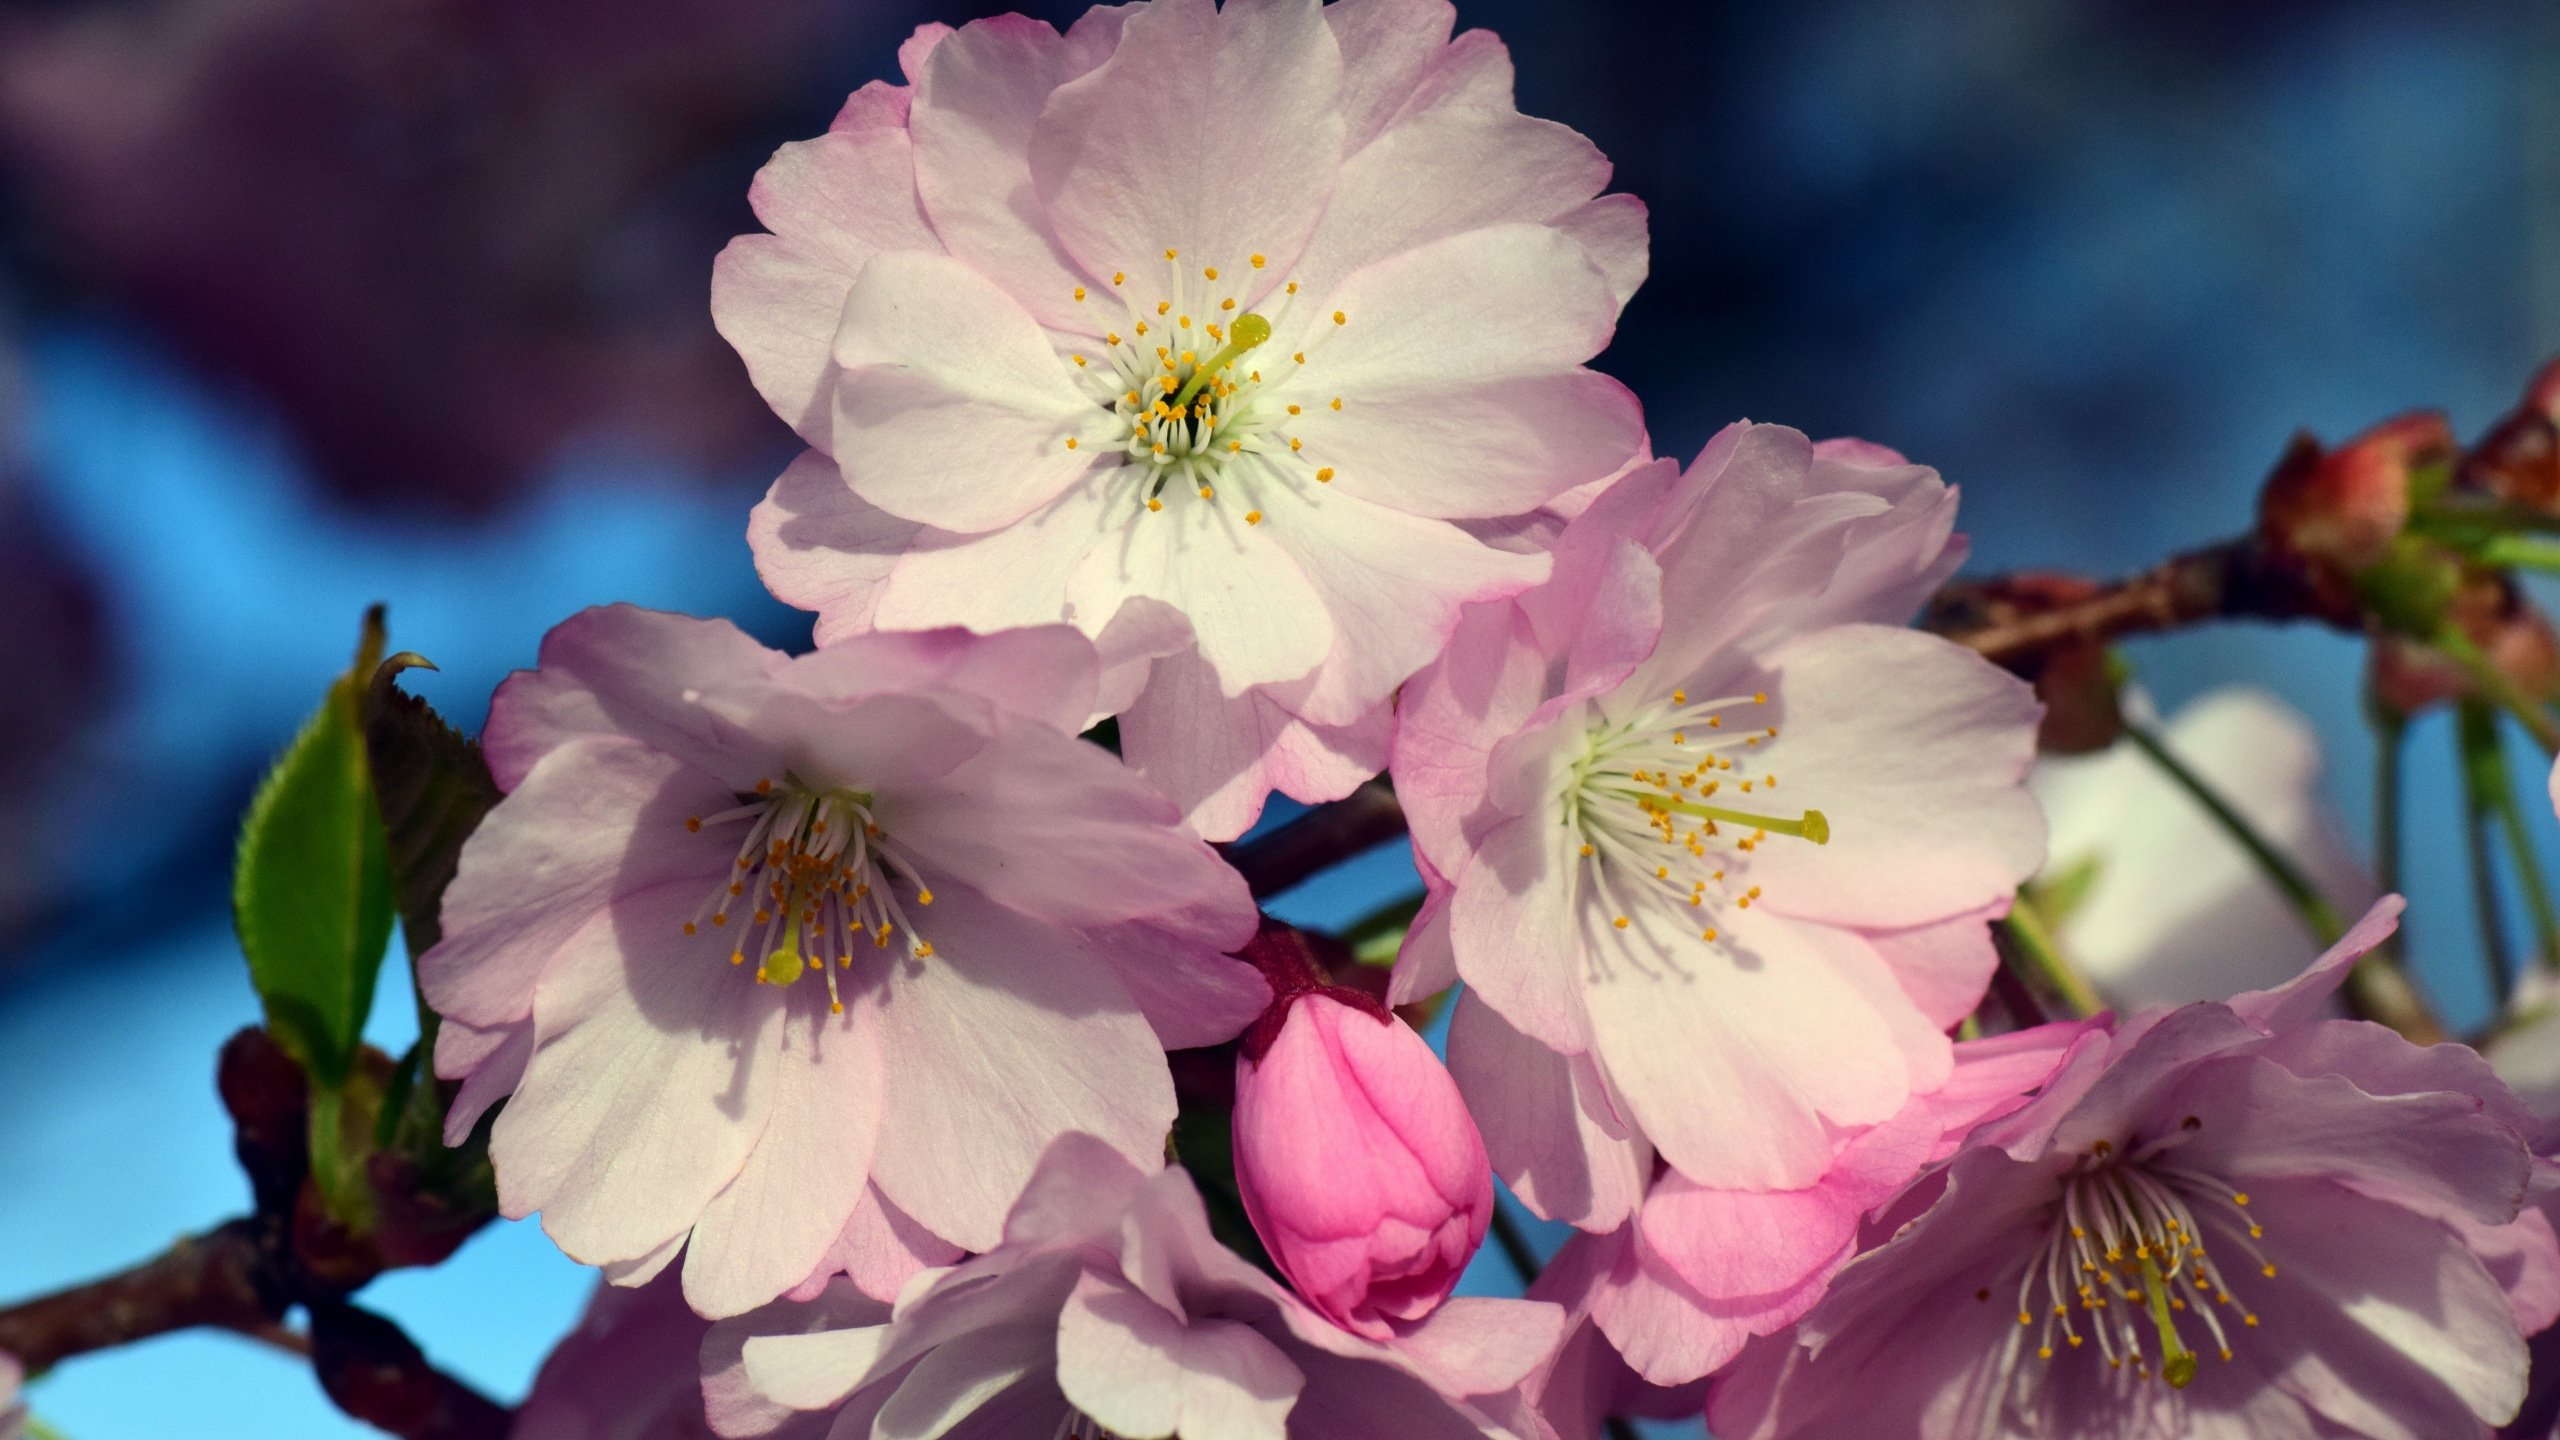 Cherry Blossom Flower Images Wallpaper